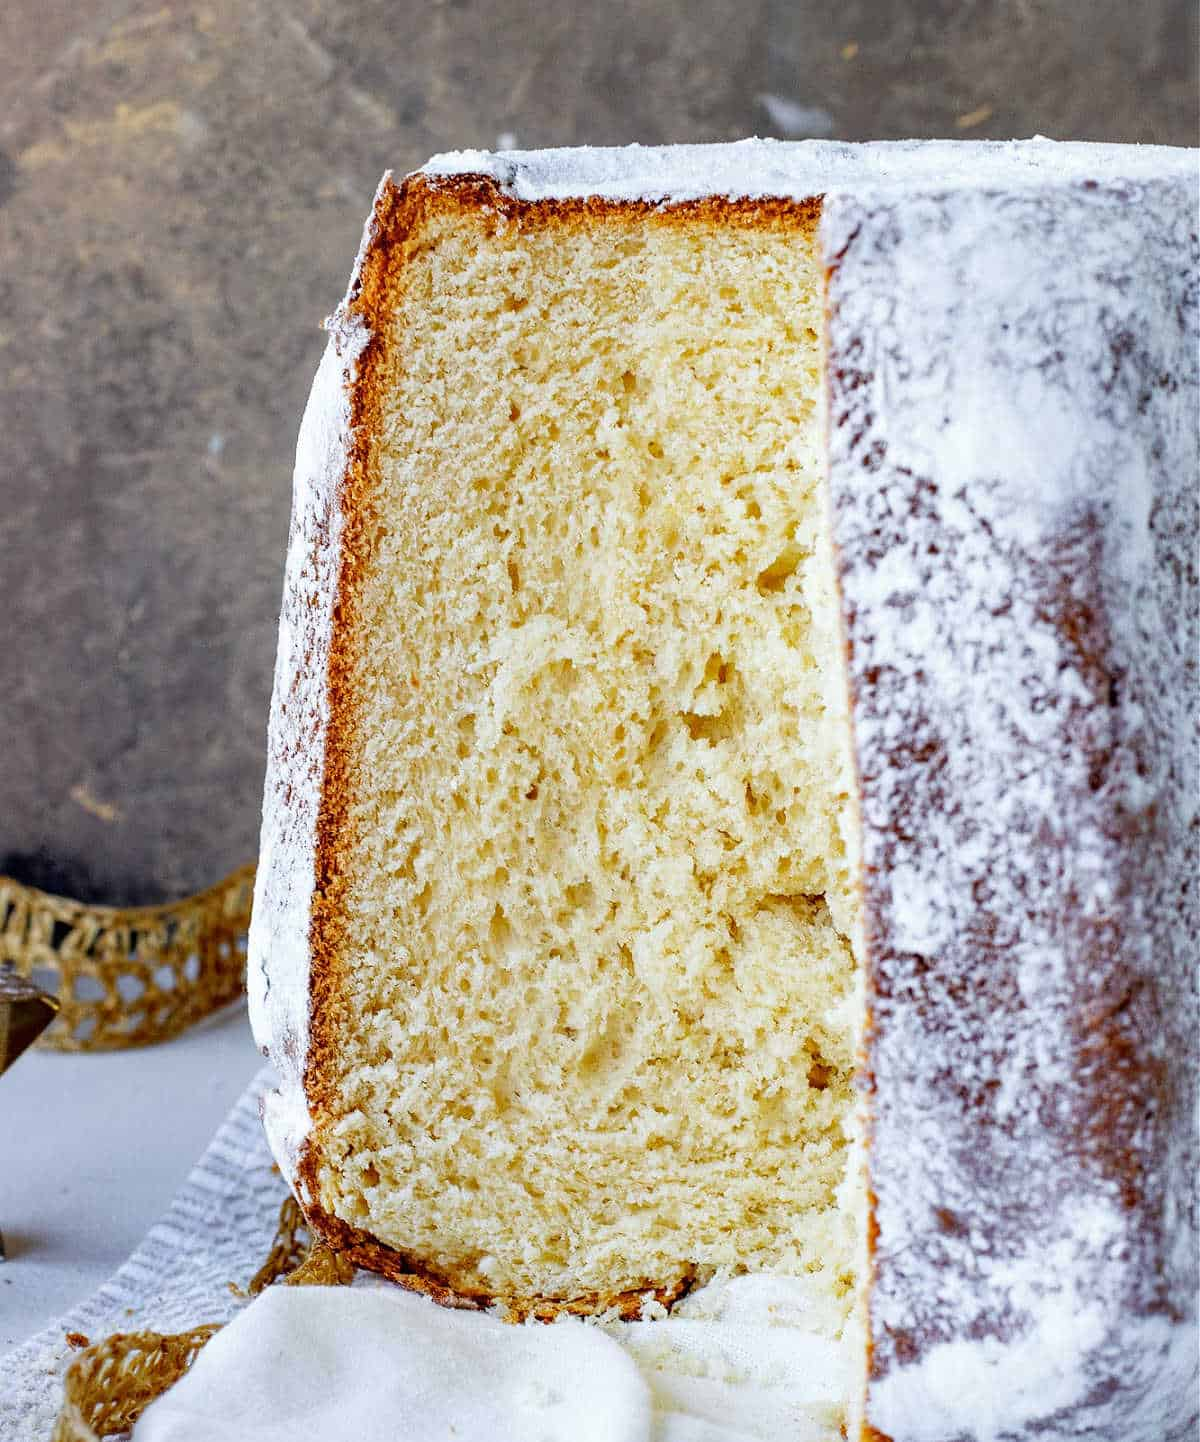 Pandoro bread with exposed crumb on white cloth and golden brown background